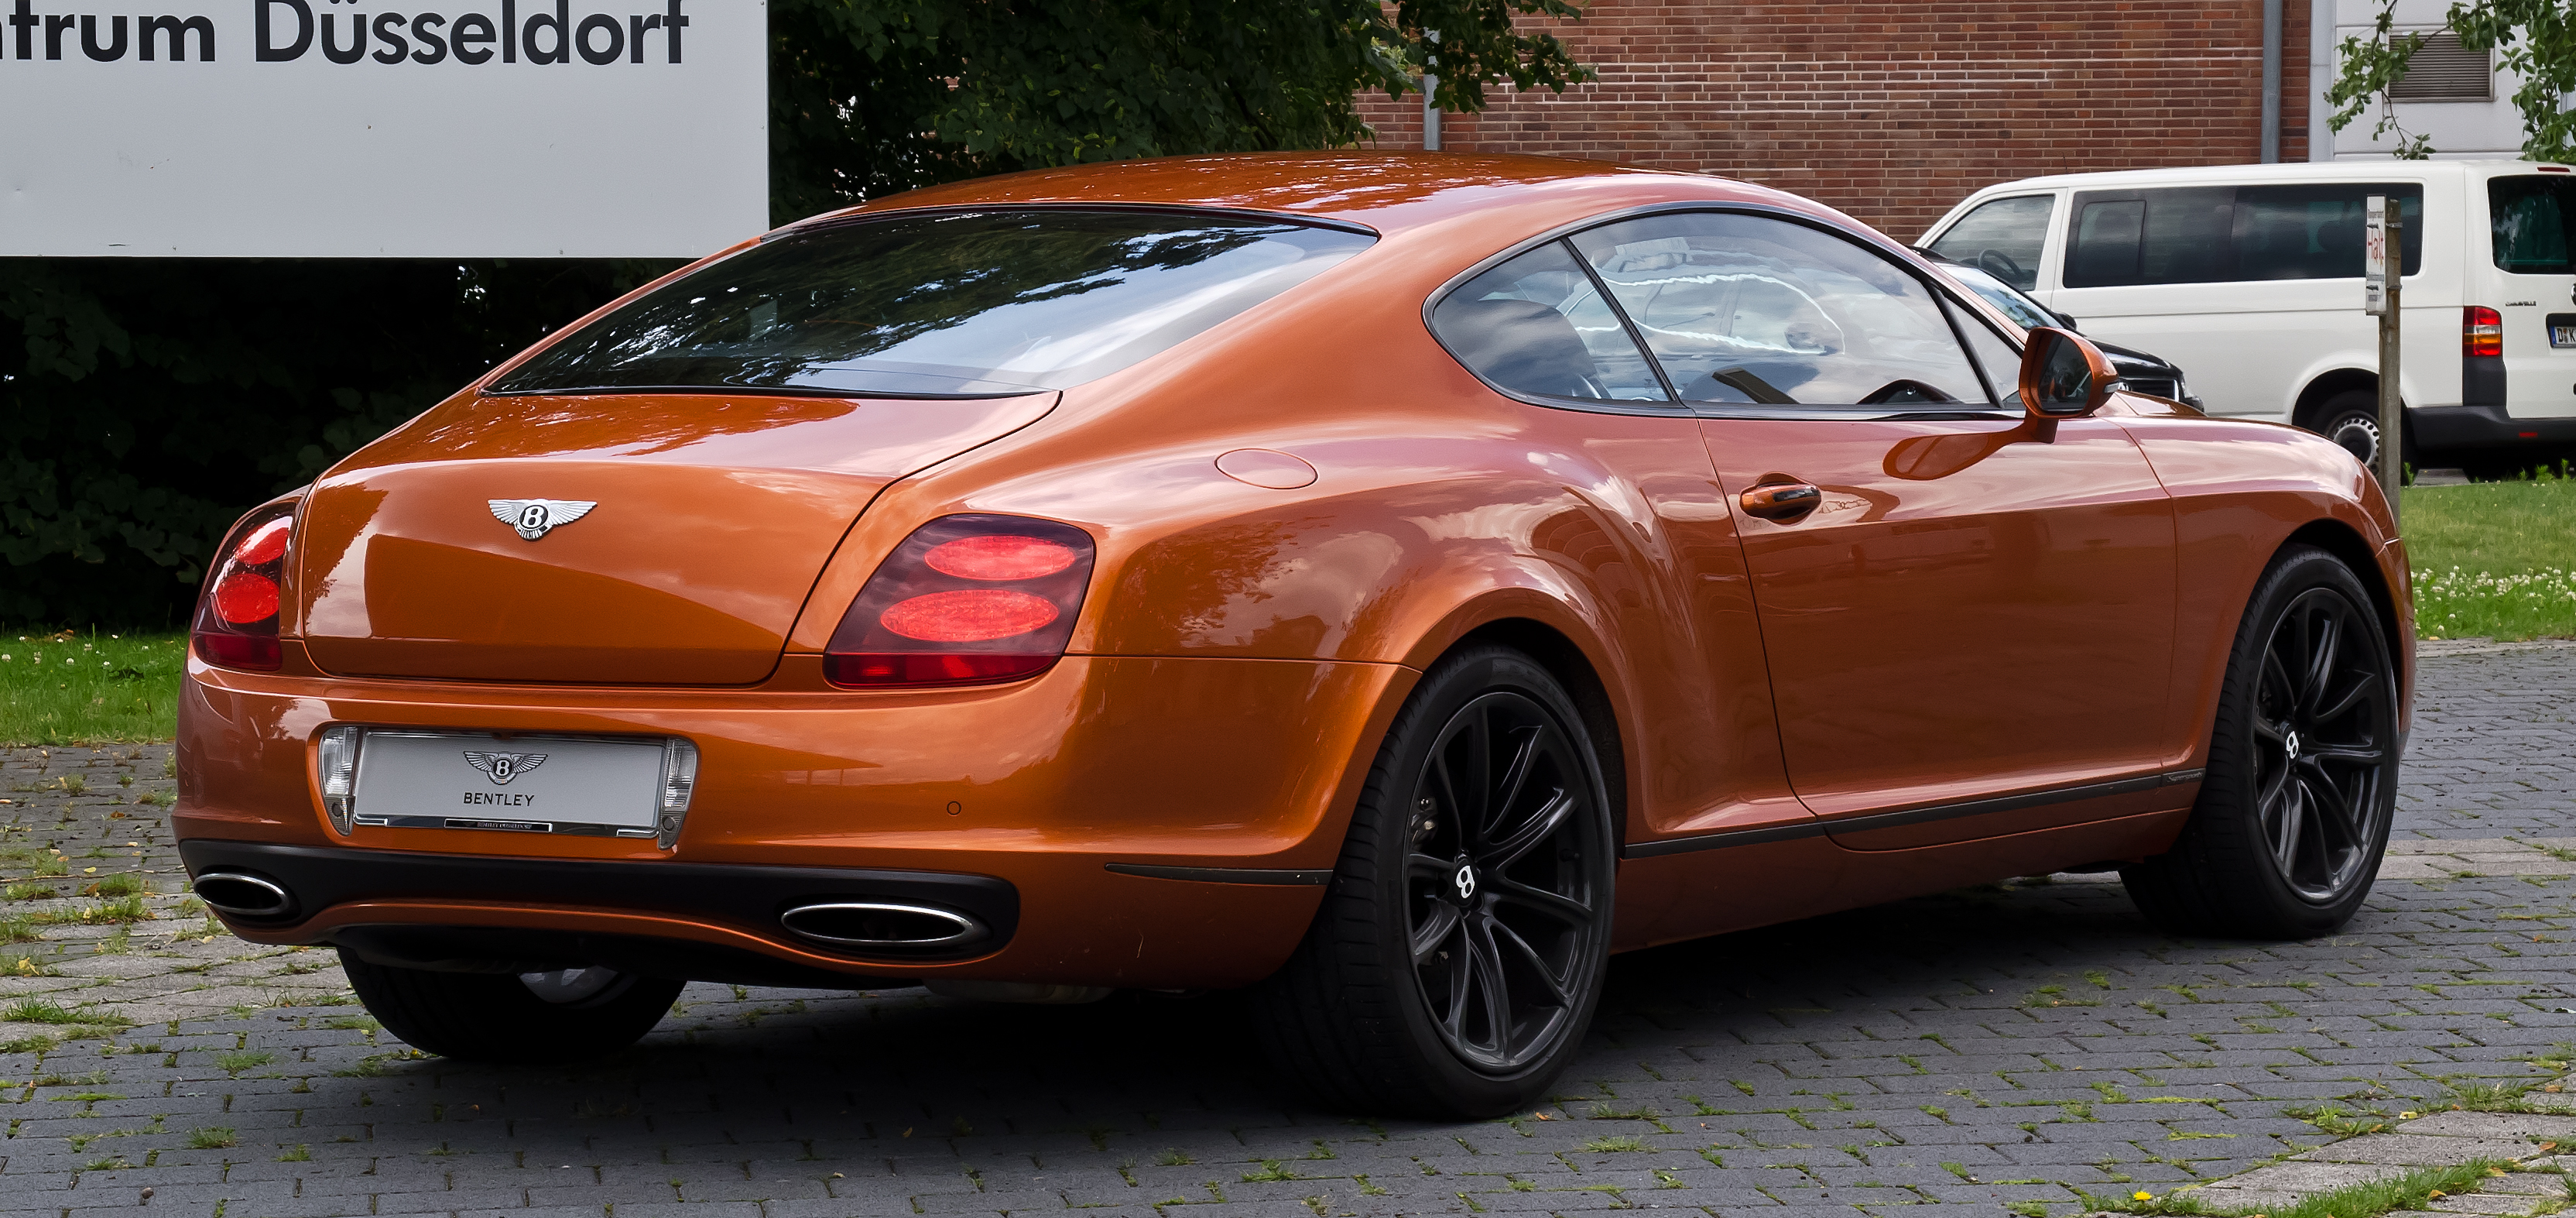 File:Bentley Continental Supersports U2013 Heckansicht, 18. Juli 2012,  Düsseldorf